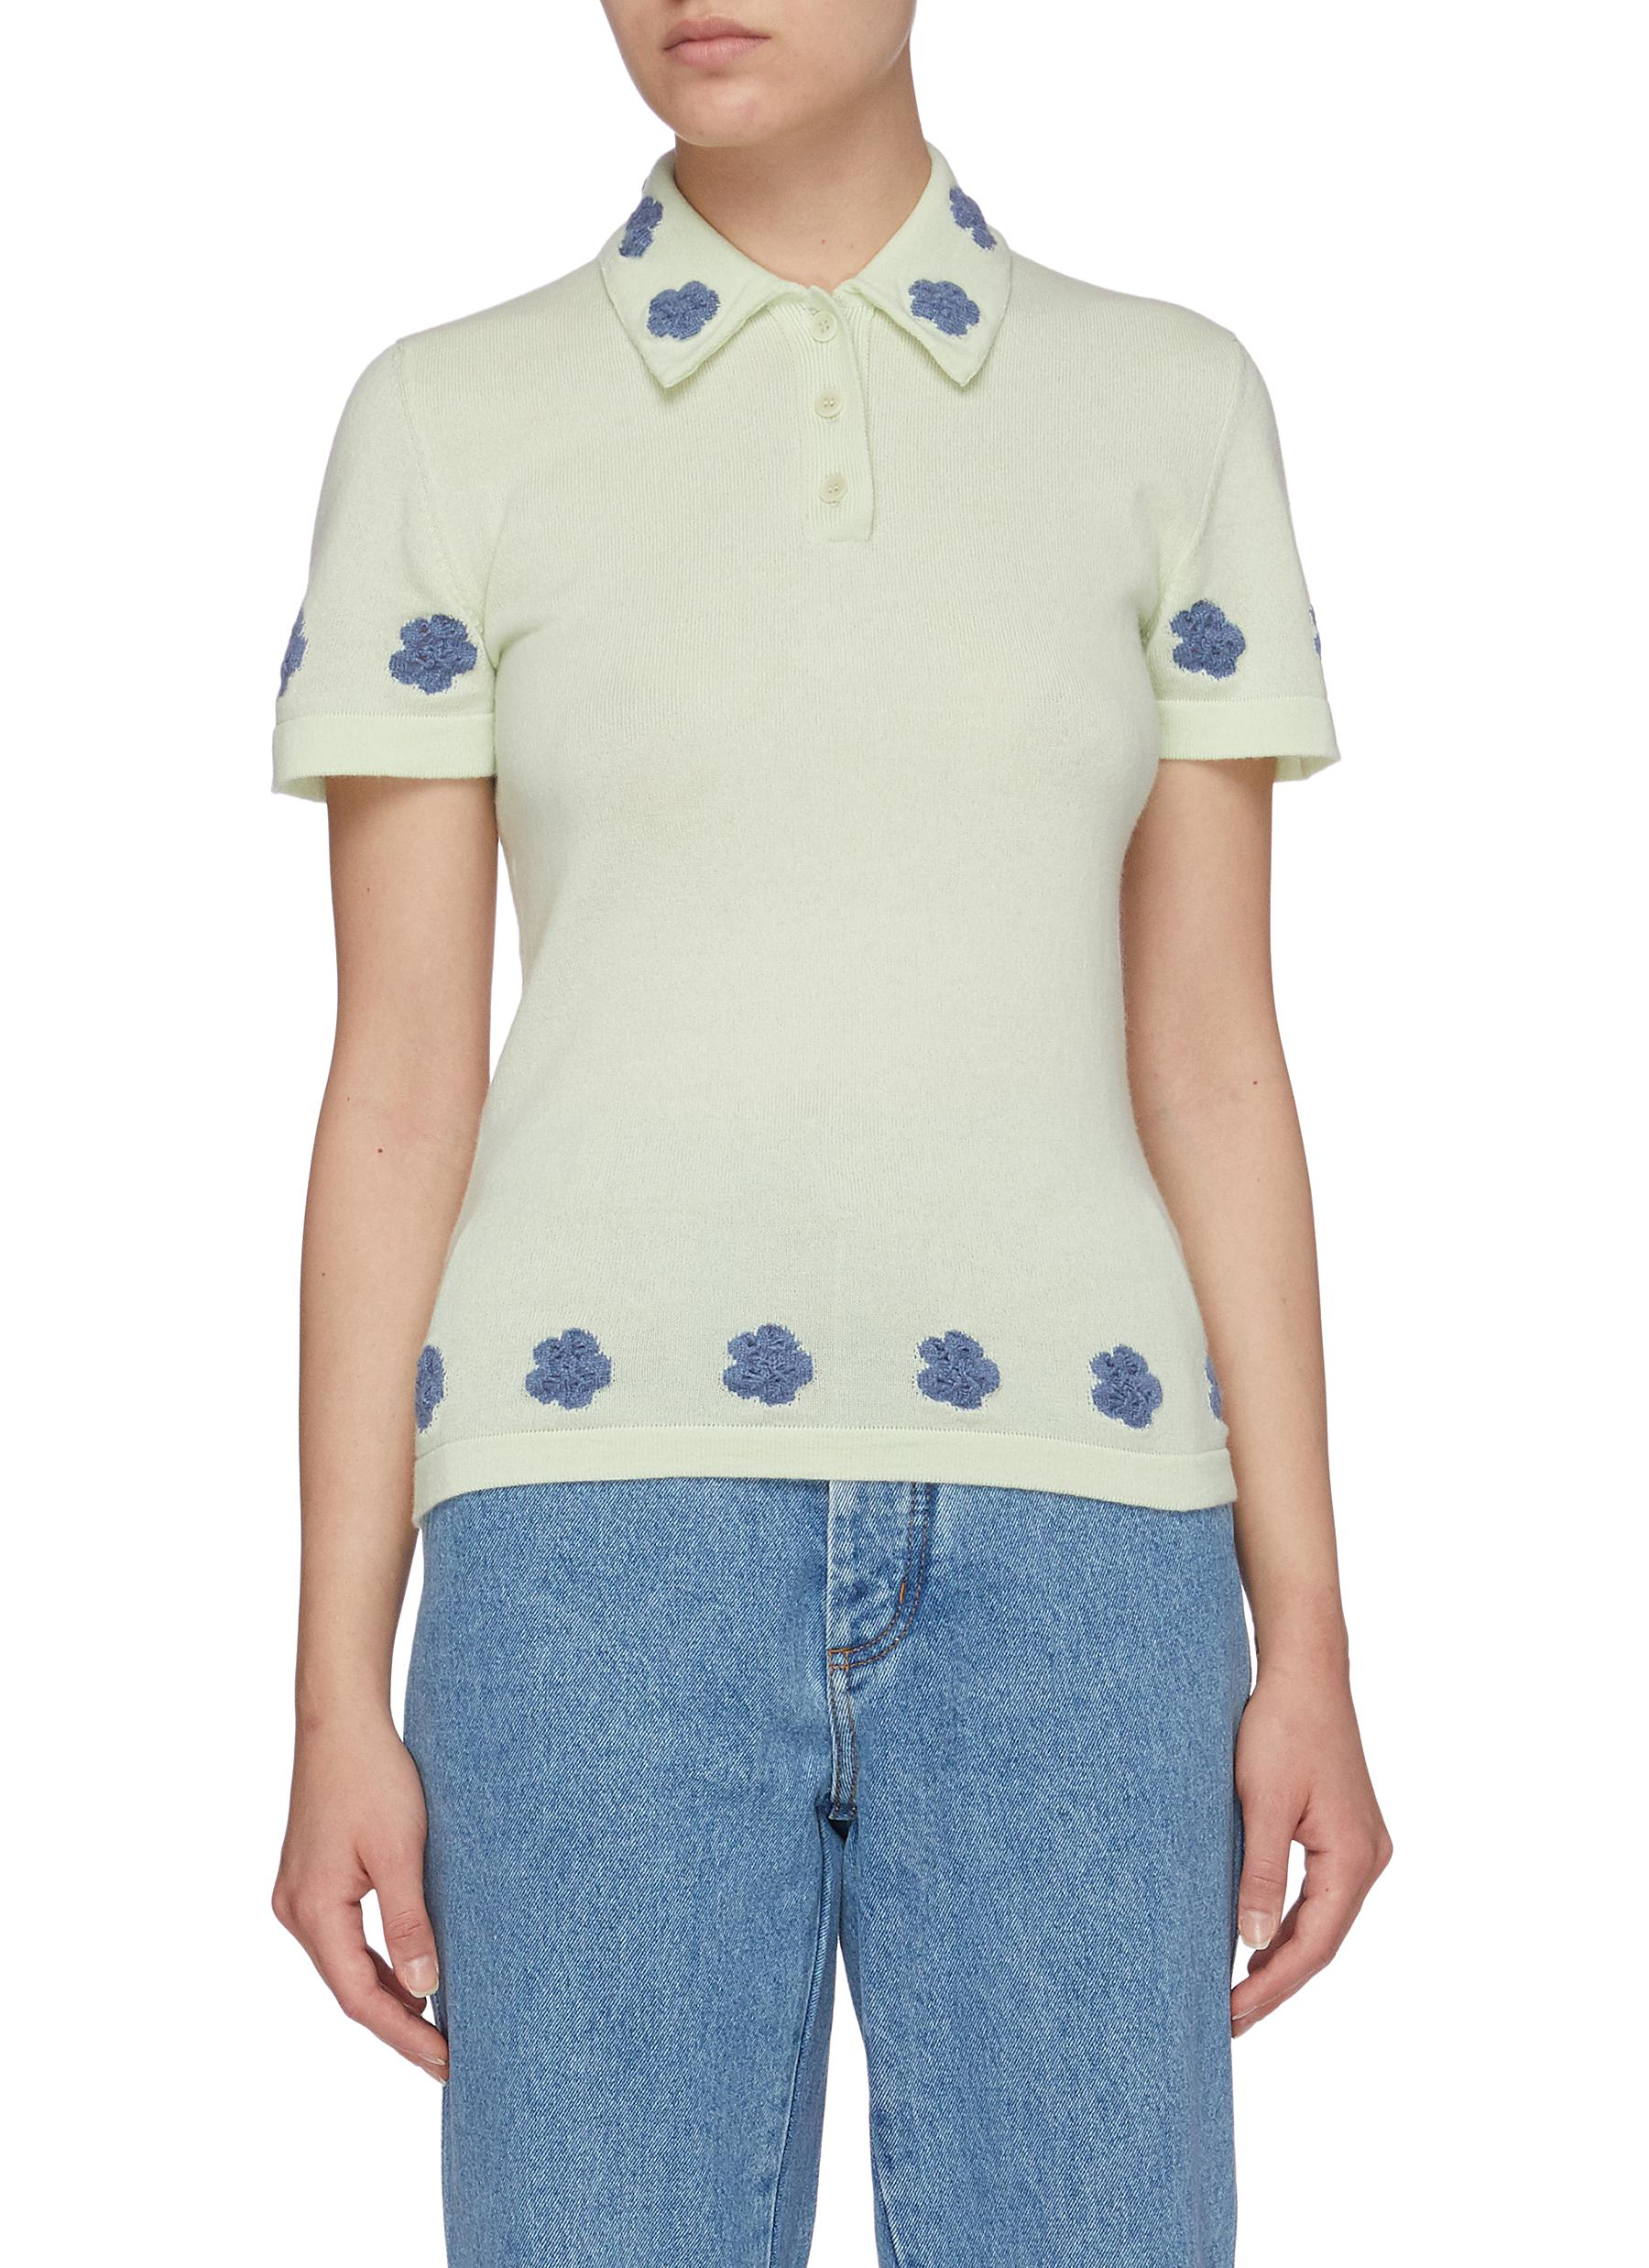 Barrie EMBROIDERED FLOWER CASHMERE BLEND POLO SHIRT